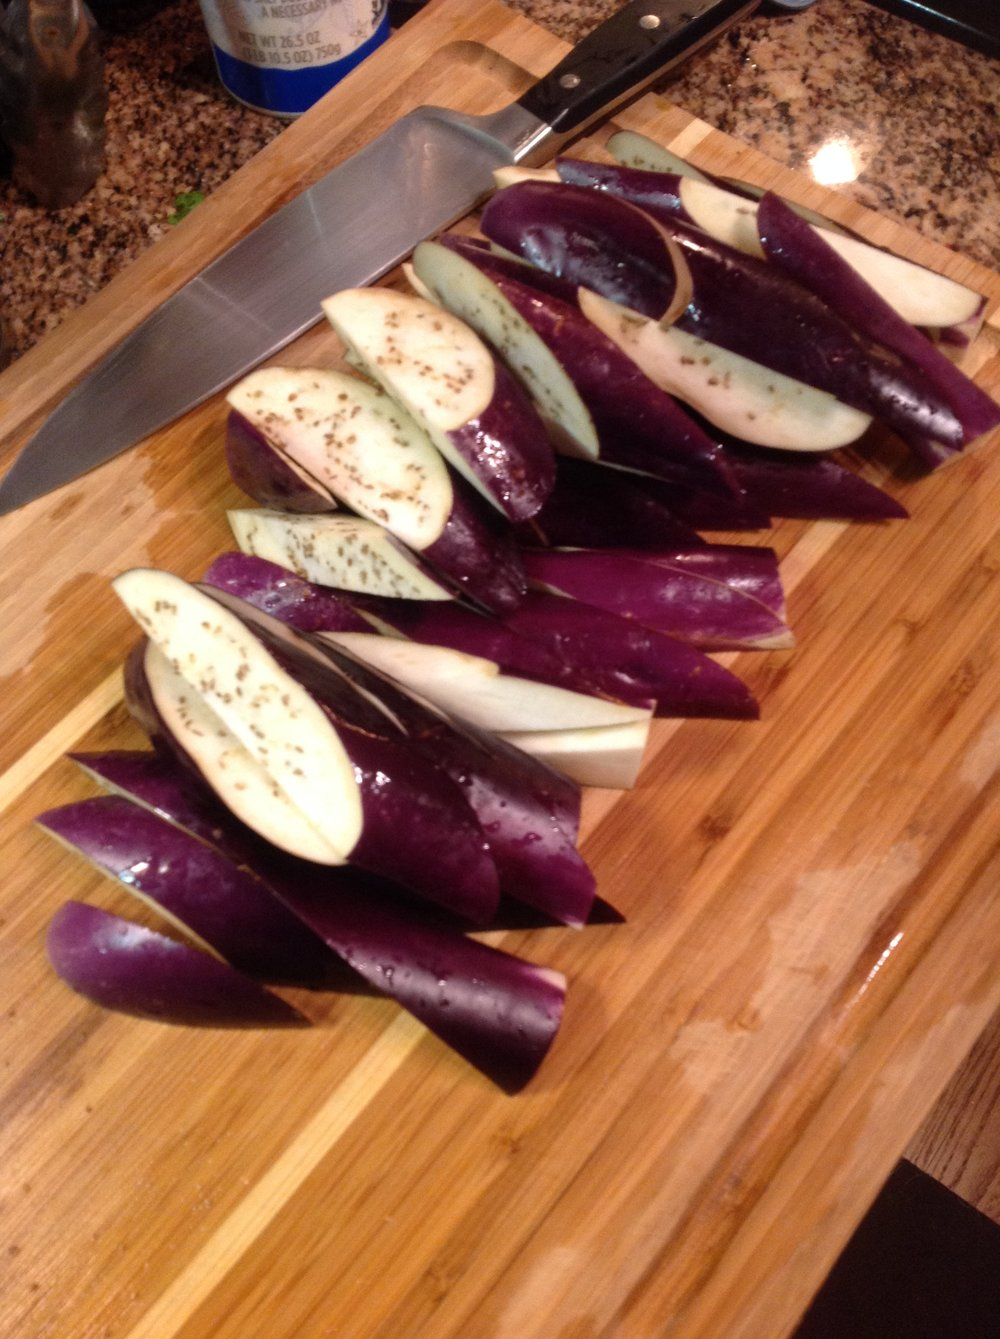 Chef's Tip: Cut eggplant on a sharp bias, for pieces that will cook quickly but also provide hearty, satisfying meat-free vegan texture in this healthy recipe